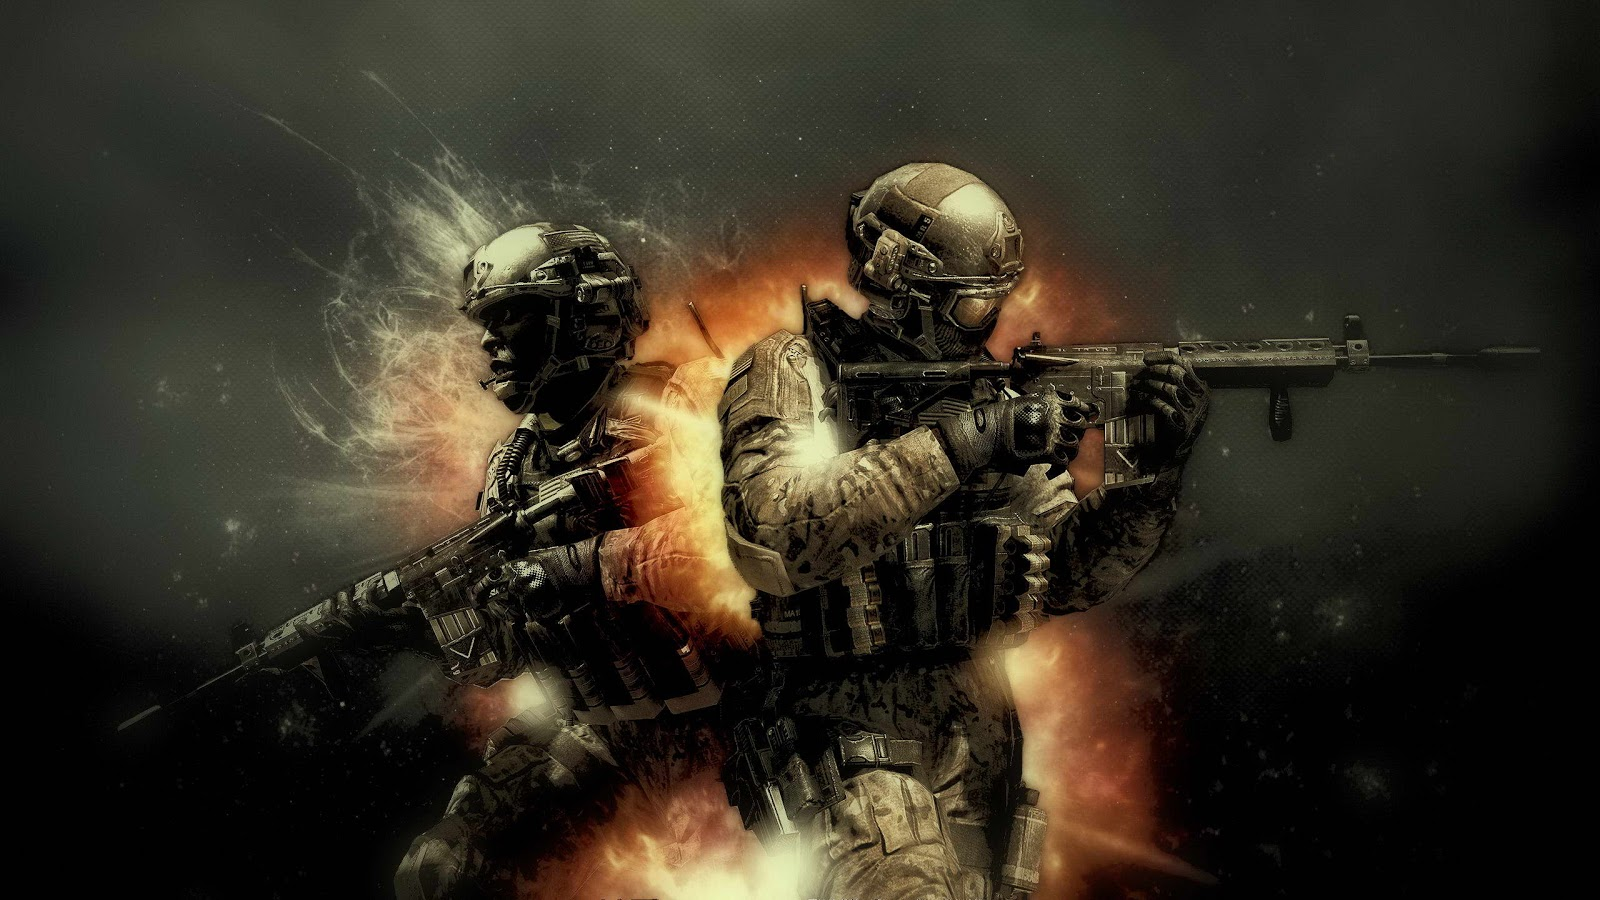 Games Cool Game Cool Bo2 Pics Call Of Duty Black Ops